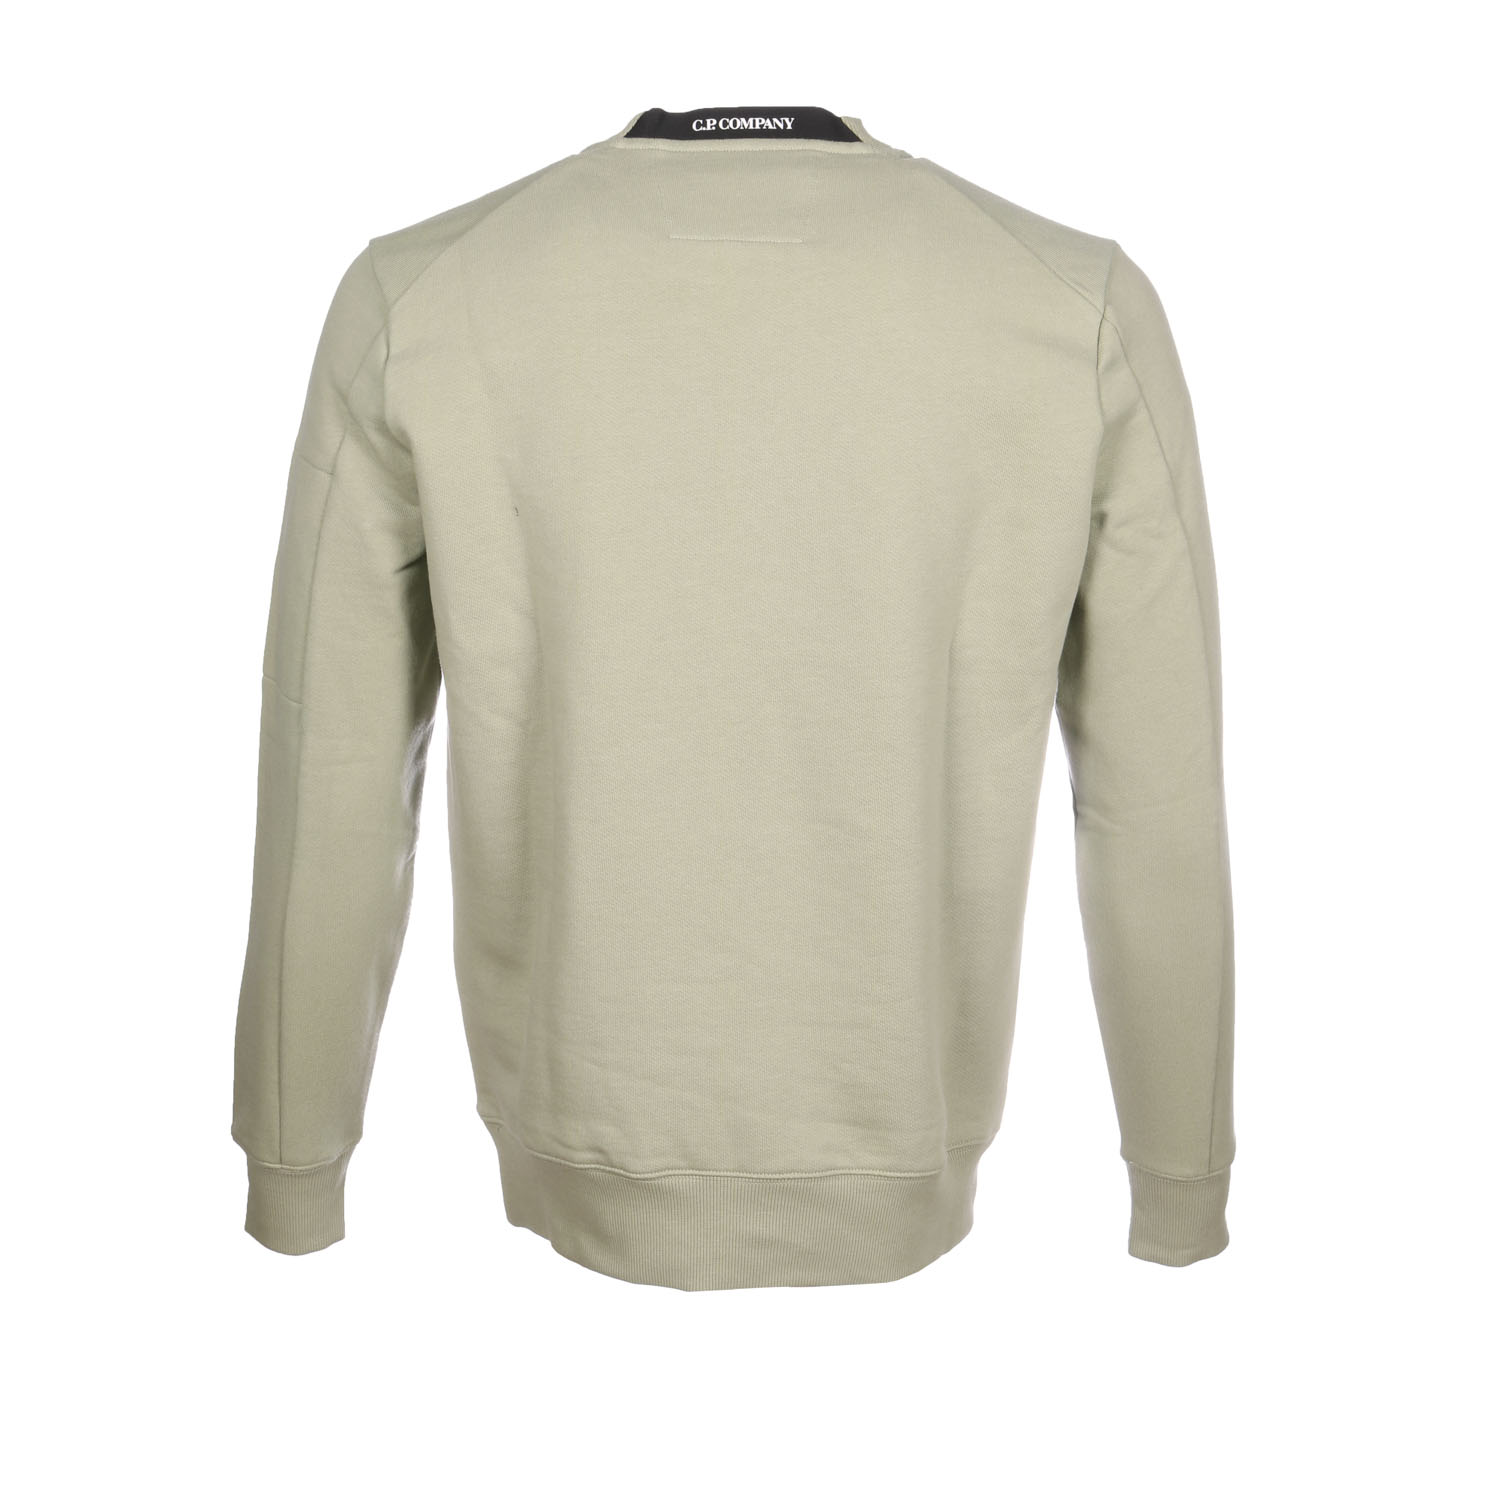 C.P. company sweater groen achter